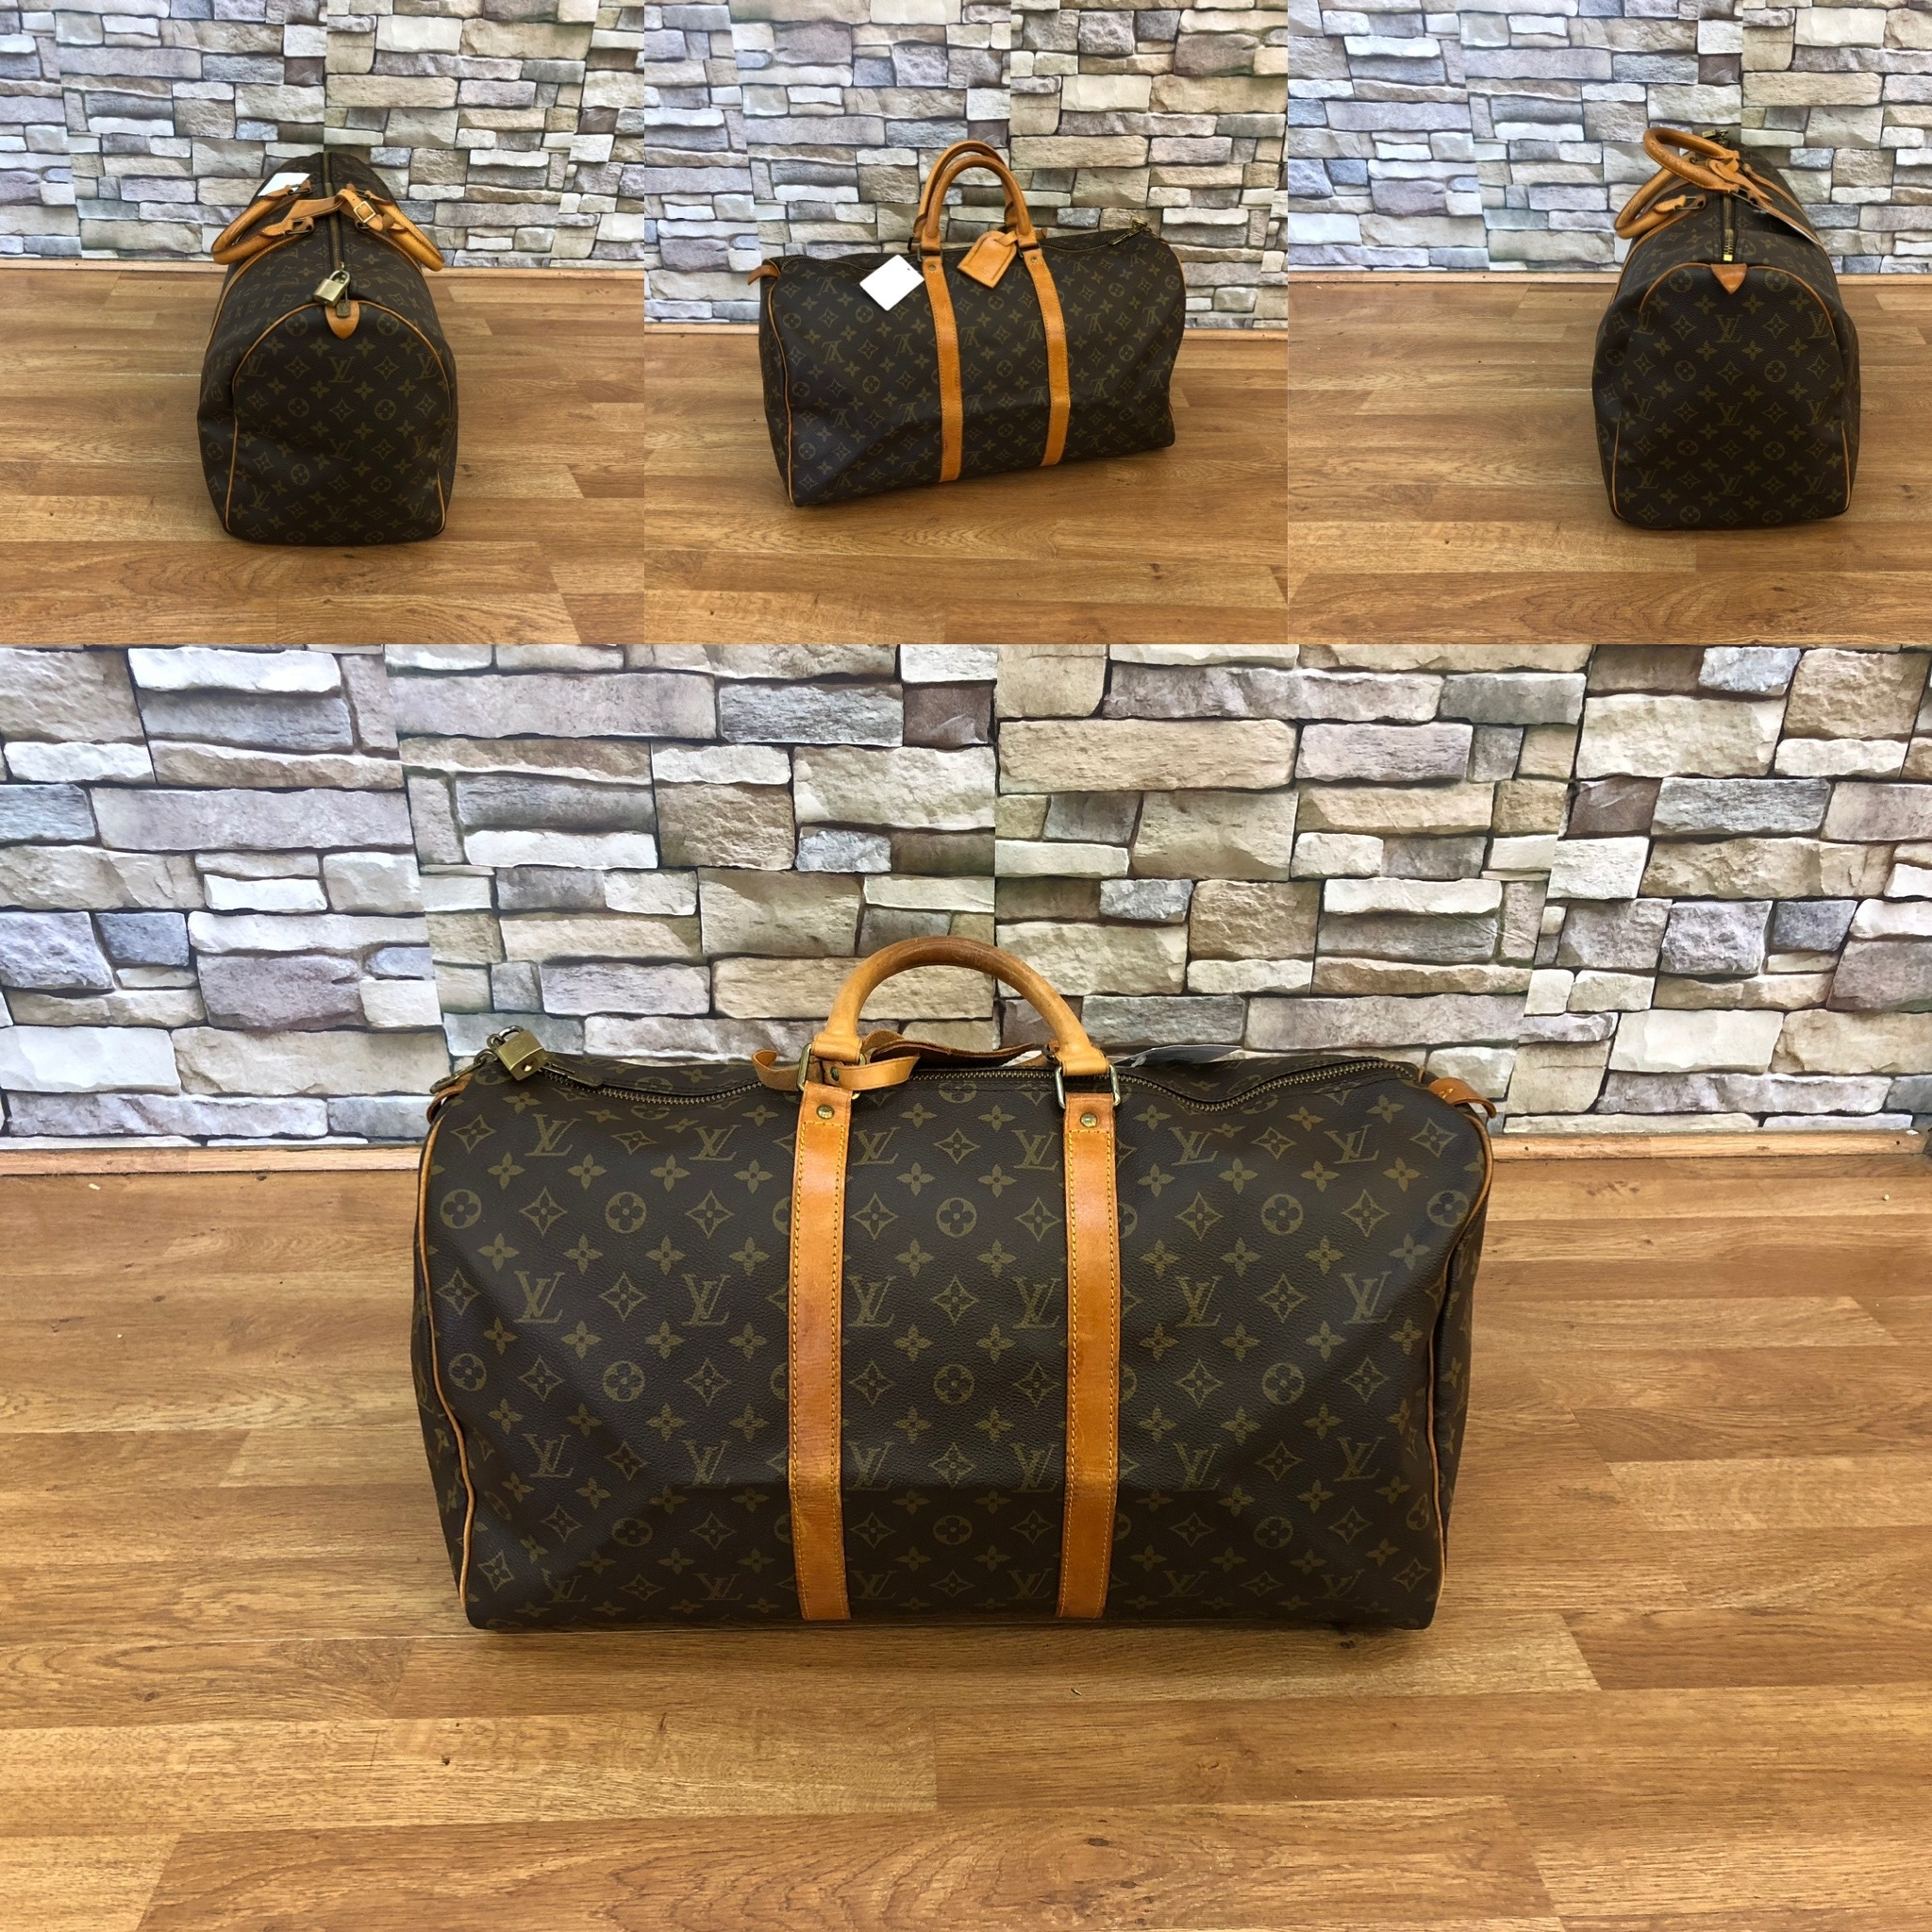 LOUIS VUITTON - Keepall 50 Pre-Loved and Entrupy Certified